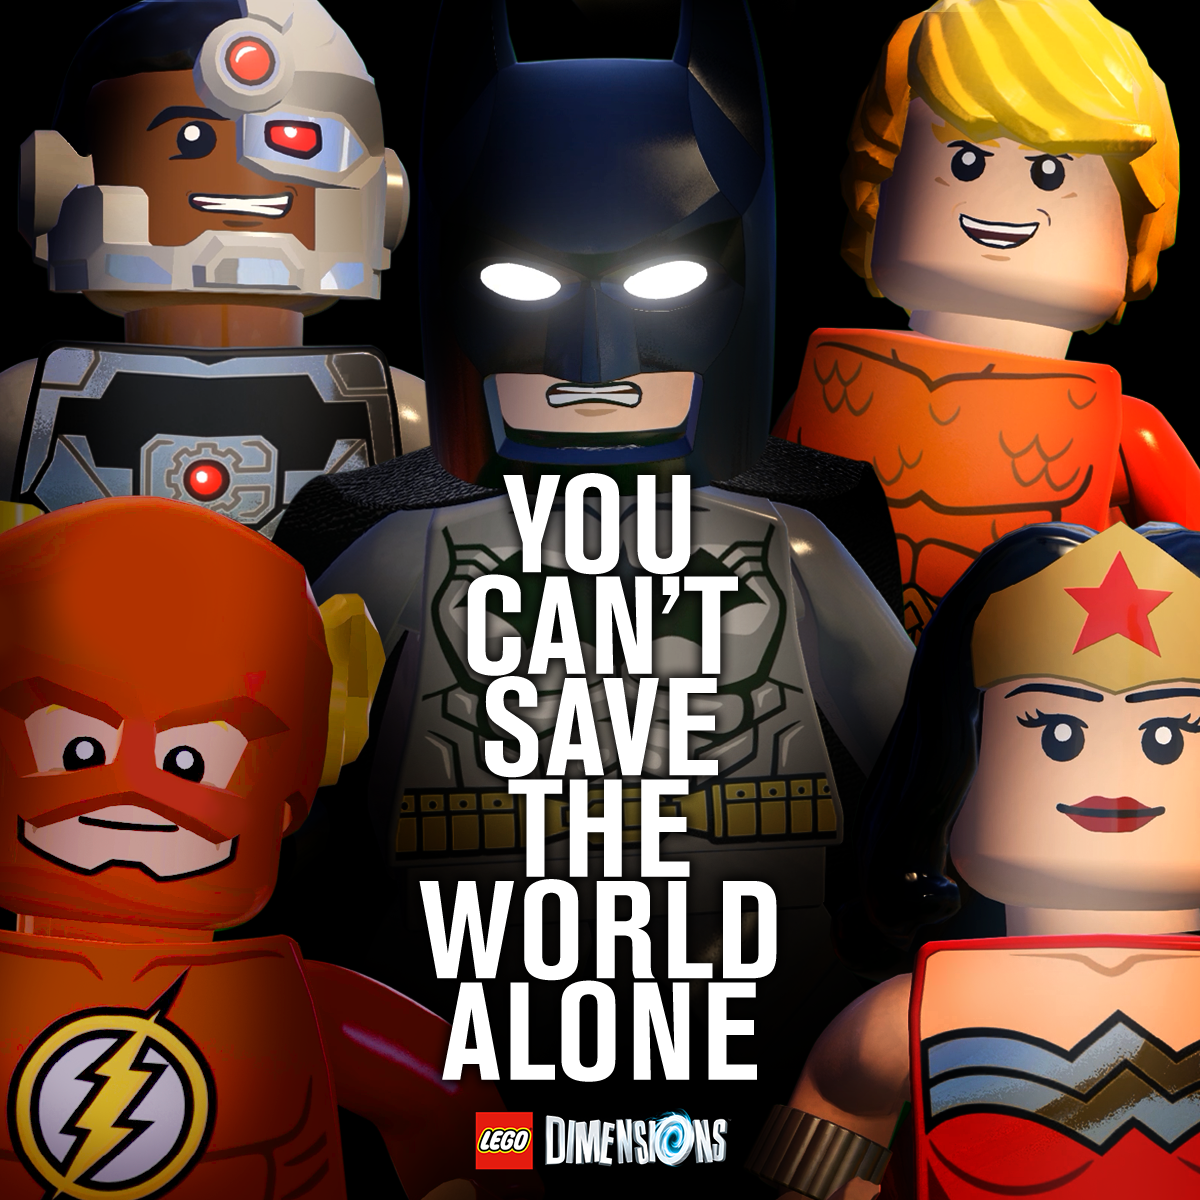 JusticeLeaguePosterSpoof_1x1_R2.png